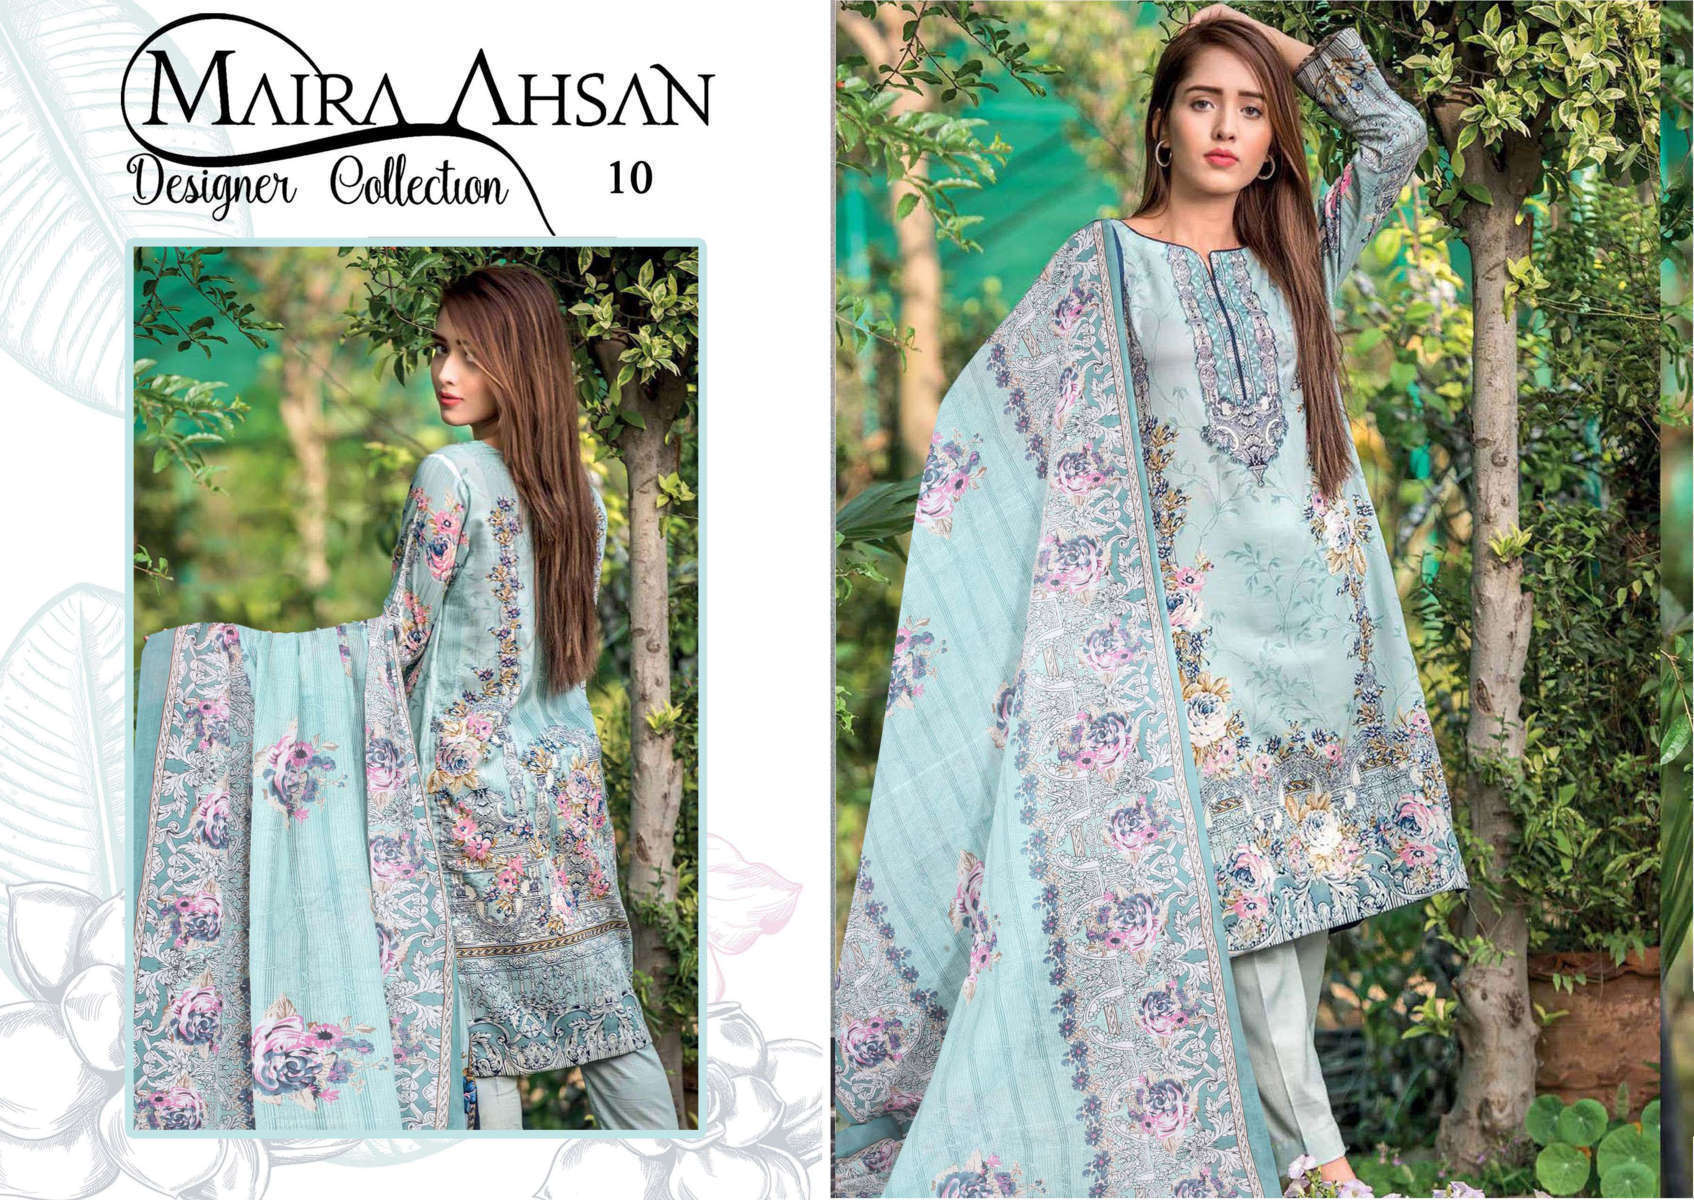 Maira Ahsan Designer Collection Vol 1 Salwar Suit Wholesale Catalog 10 Pcs 12 - Maira Ahsan Designer Collection Vol 1 Salwar Suit Wholesale Catalog 10 Pcs